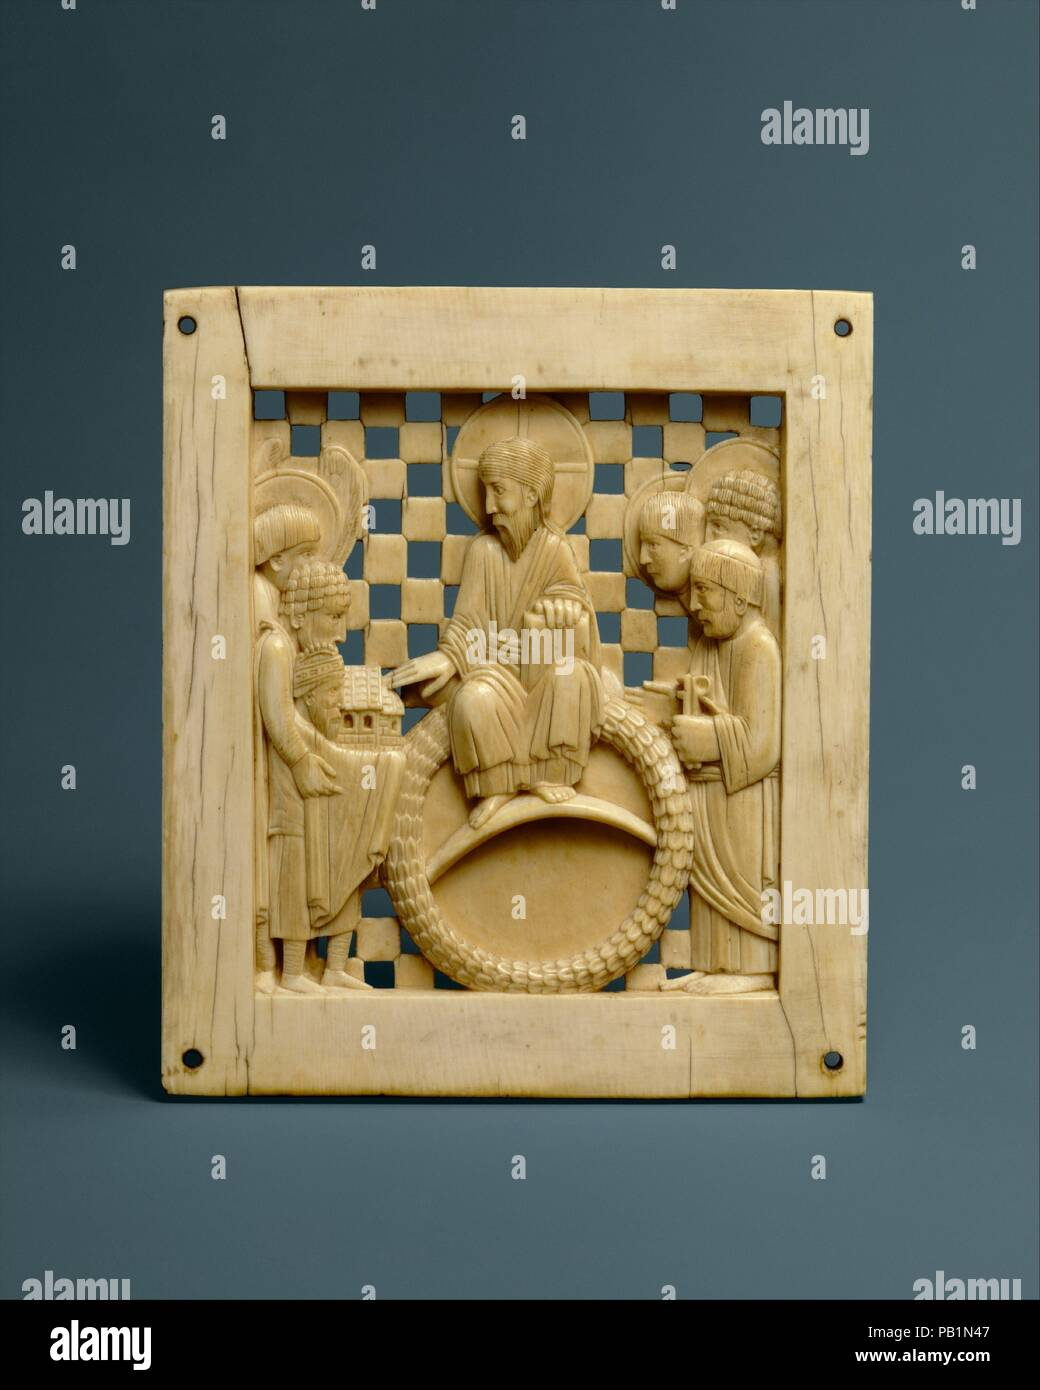 Famous Ivory Carvings Stock Photos & Famous Ivory Carvings Stock